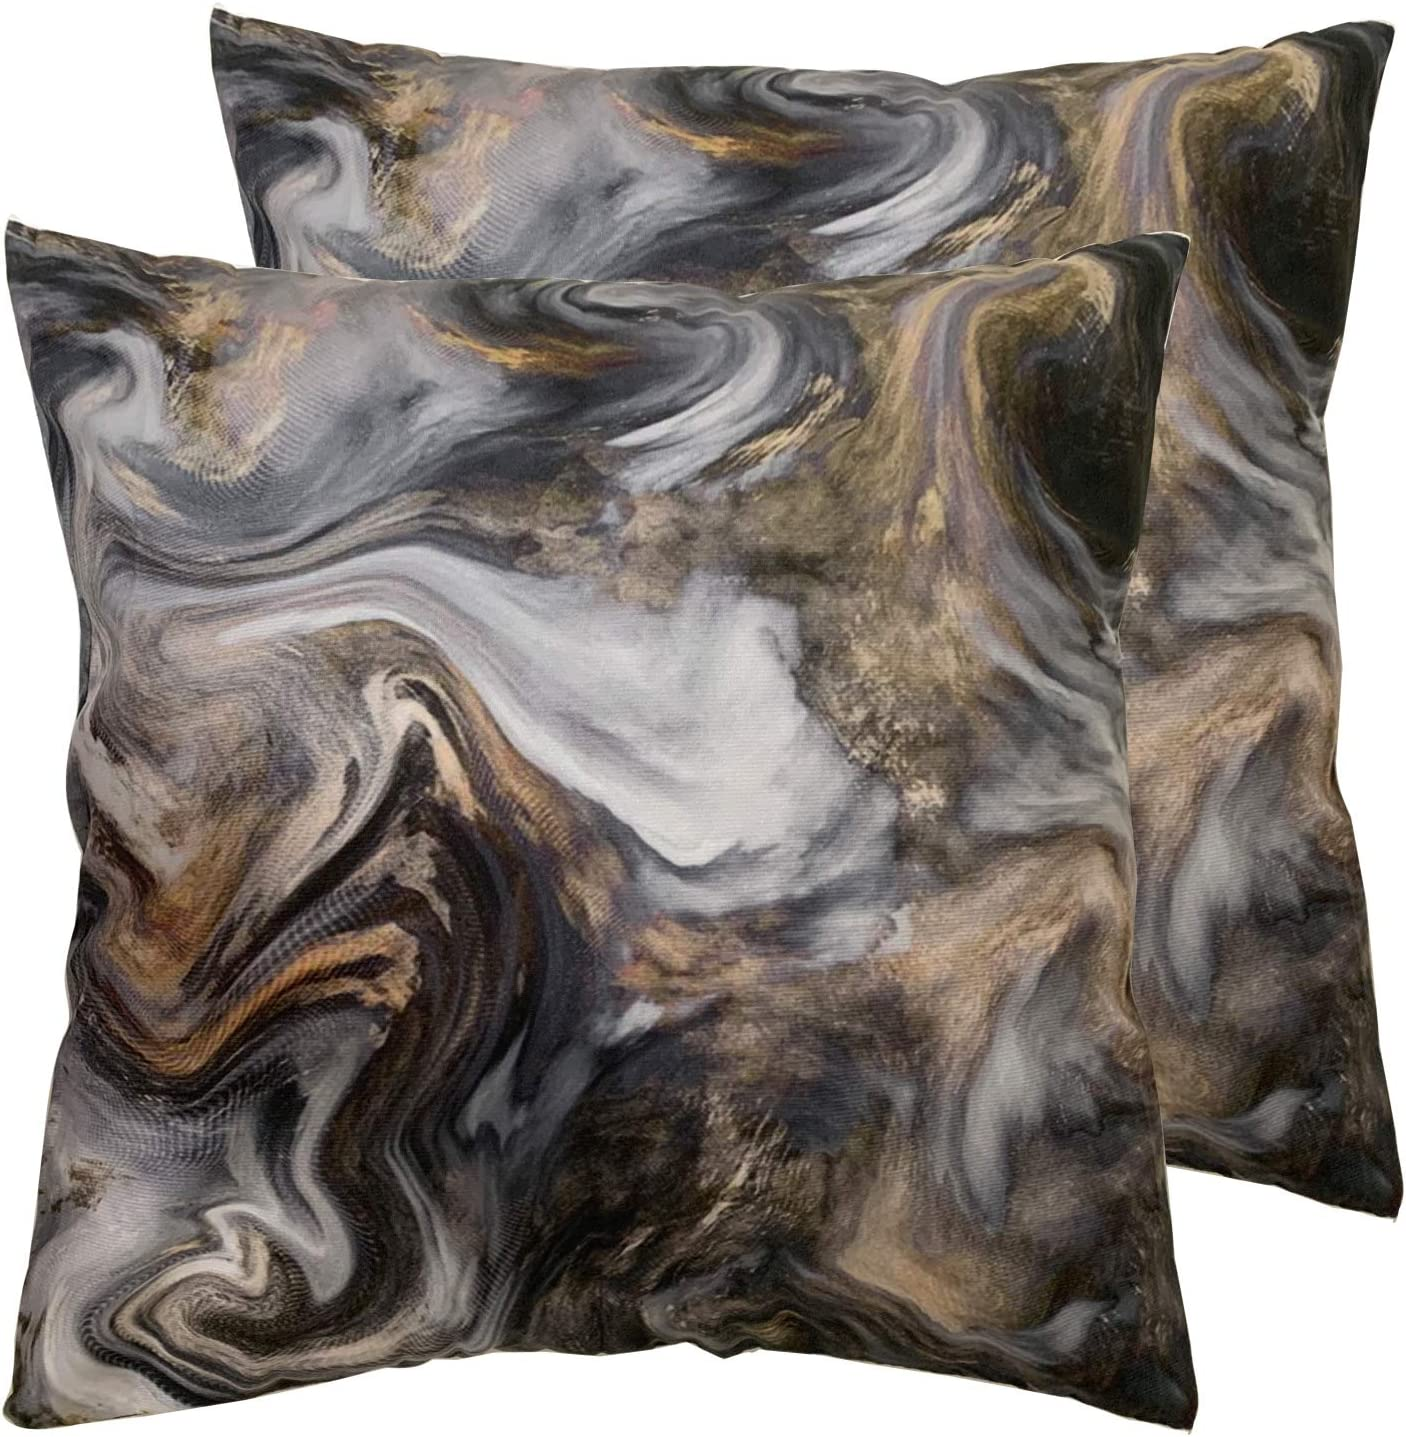 Set of 2 Square Max 65% OFF 18X18 inch Throw Women Men Sho Pillow Beauty products for Cover